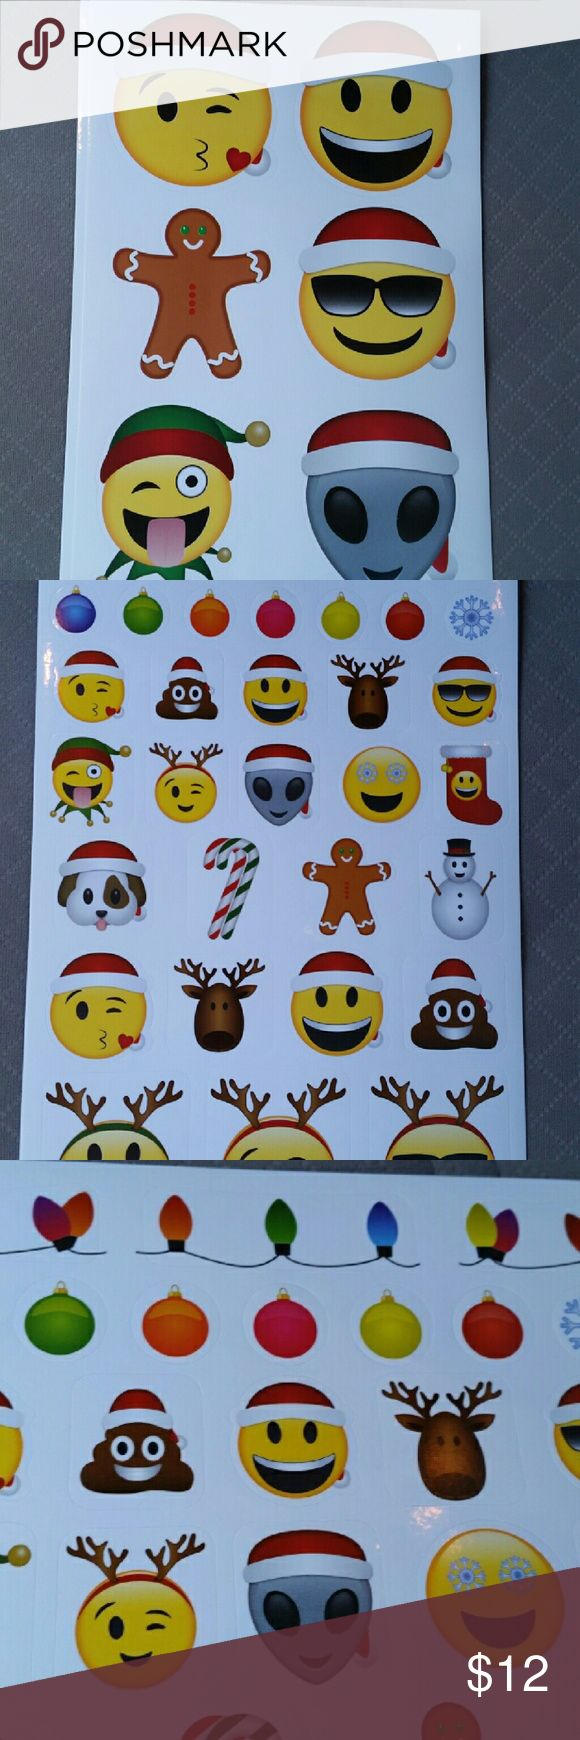 Christmas Emoji 105 stickers Merry Moji NIP Thank you for viewing my listing, for sale is 1 pack of emoji Christmas stickers. MERRY MOJI   You will receive 5 sheets of stickers, totaling 105 stickers. You will receive 2 sheets of the bigger stickers, & 3 sheets of the smaller stickers   Brand new in the package, these would be great to place on presents, Christmas cards, stocking stuffers whatever you want!   If you have any questions or would like additional photos please feel free to ask…